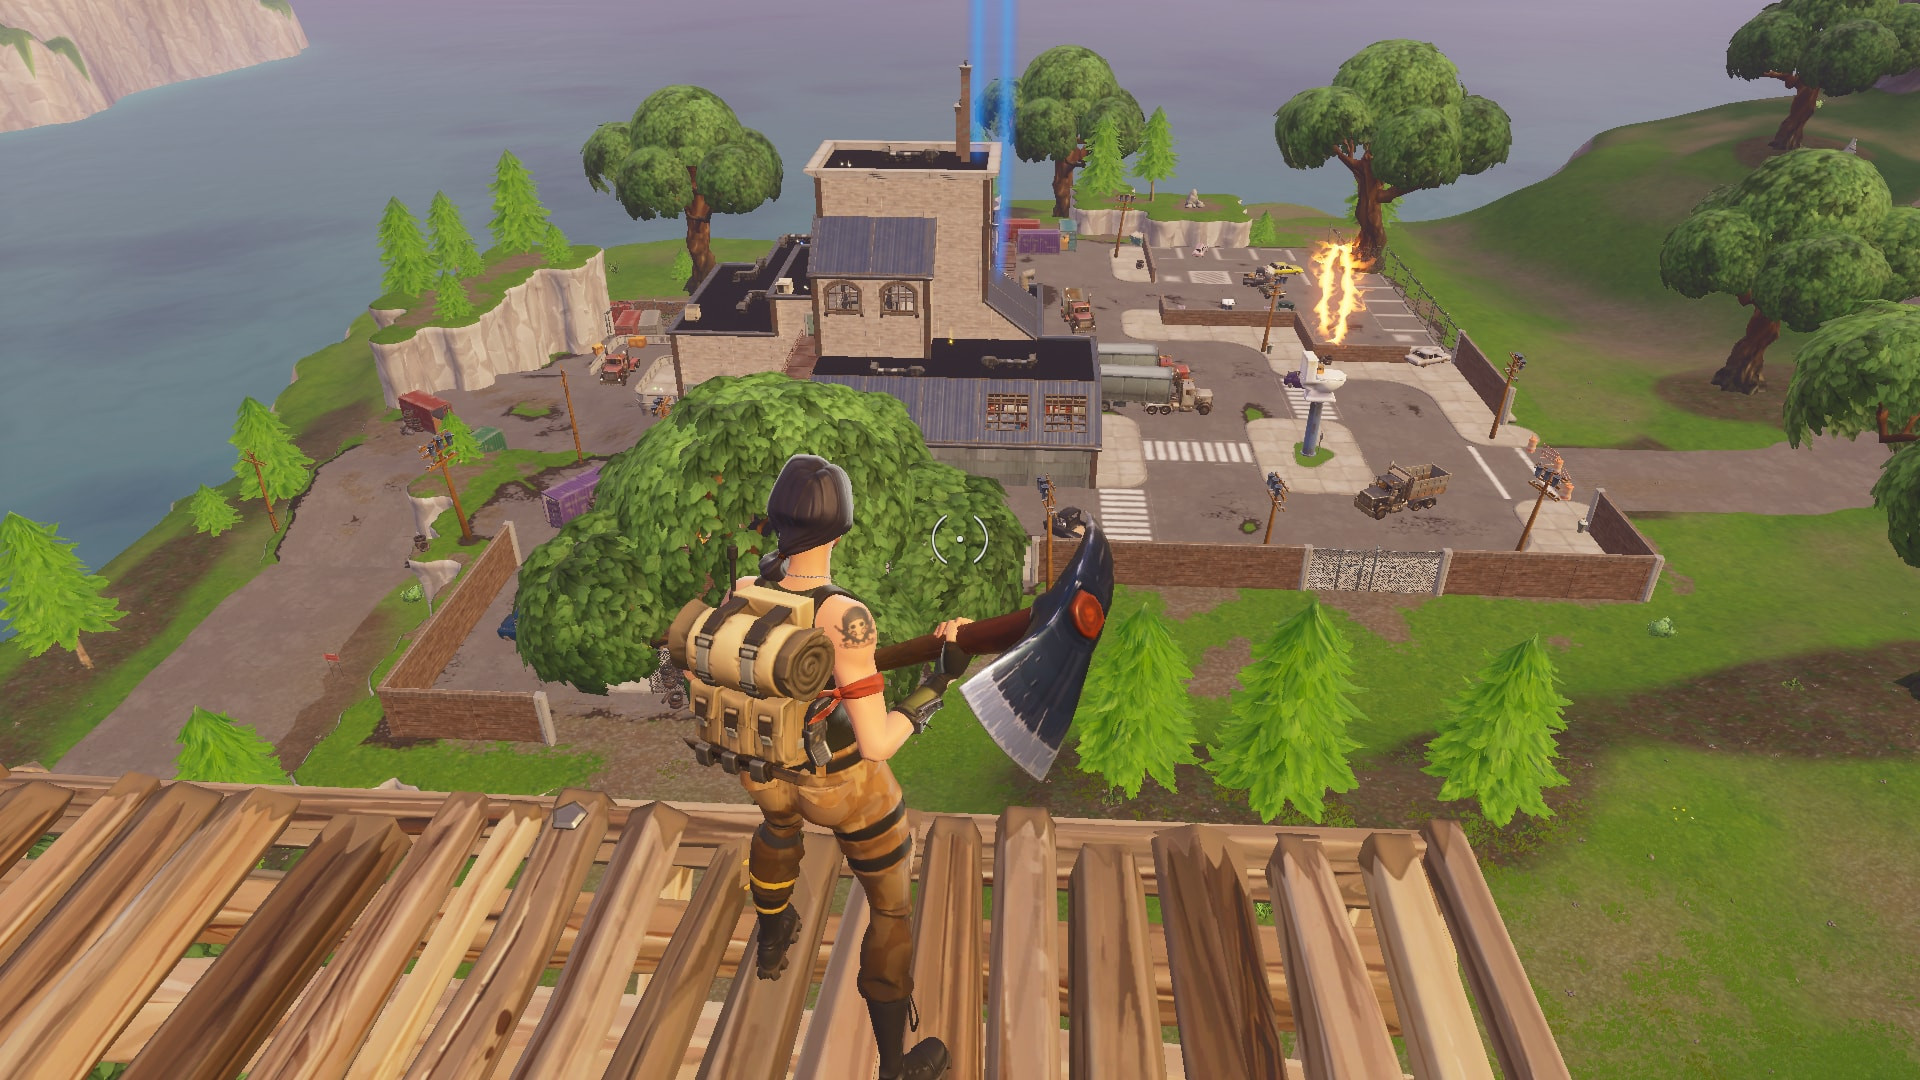 Top view of Flush Factory | Fortnite - zilliongamer your game guide